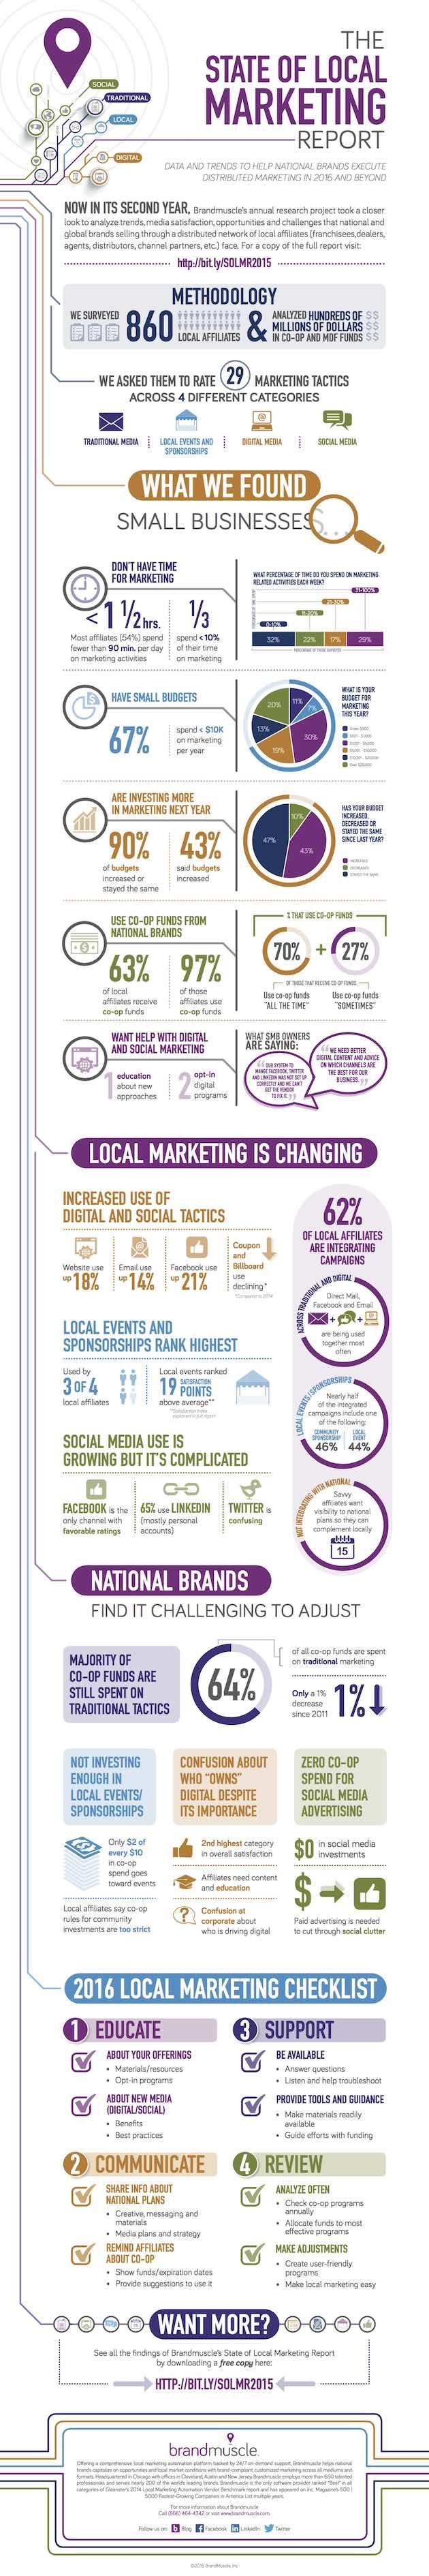 Marketing Strategy - The State of Local-Affiliate Marketing in 2016 [Infographic] : MarketingProfs Article